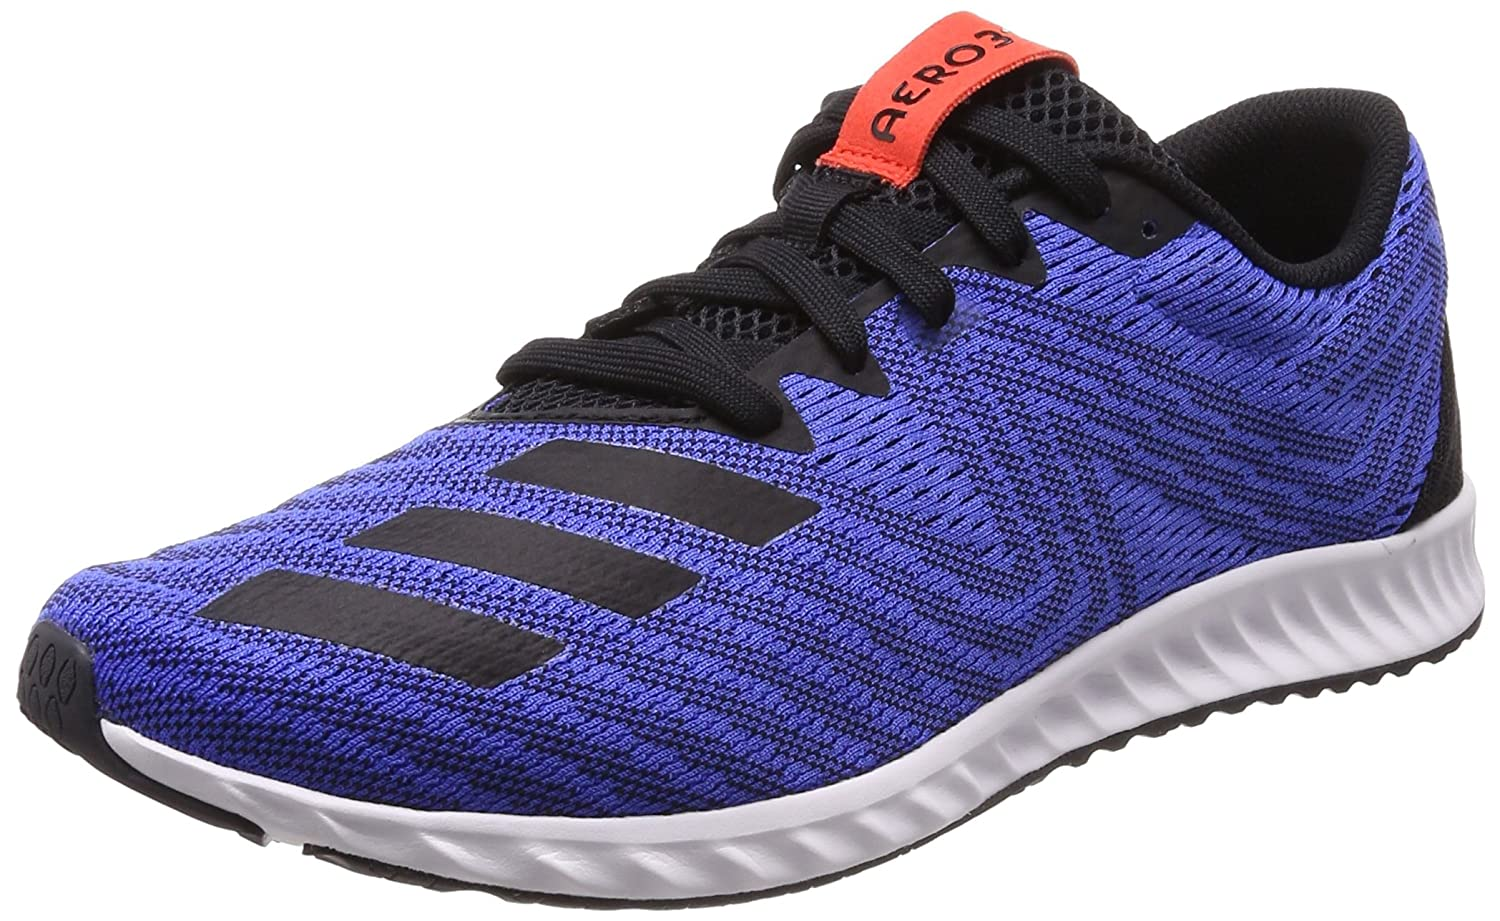 super popular c6234 902e3 adidas Aerobounce Pr, Scarpe da Fitness Uomo  Amazon.it  Scarpe e borse